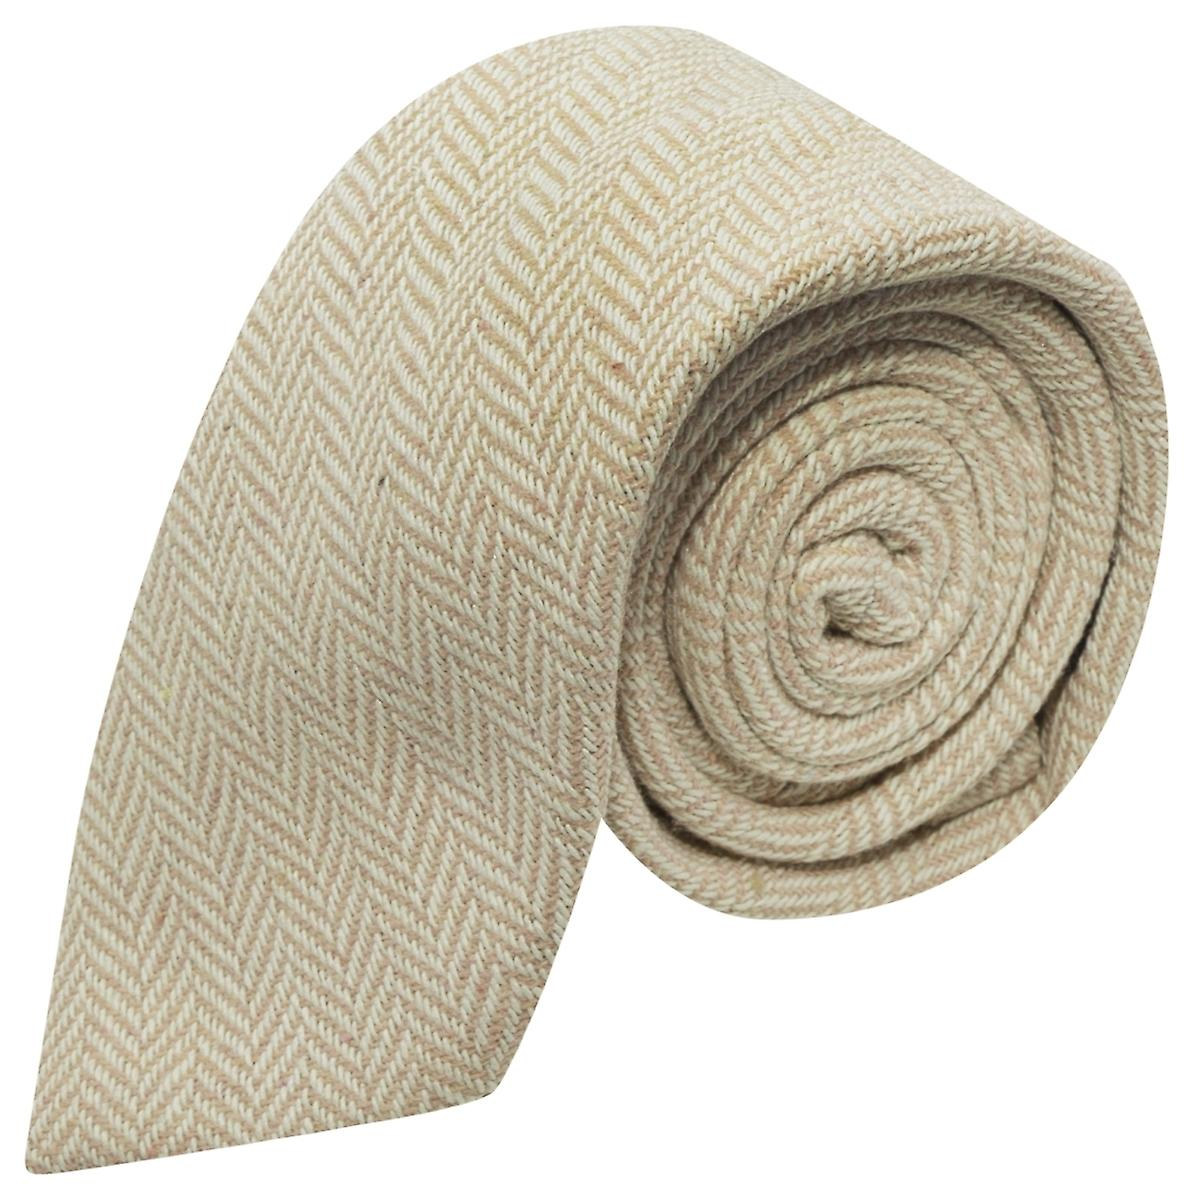 Gold & Cream Herringbone Tie